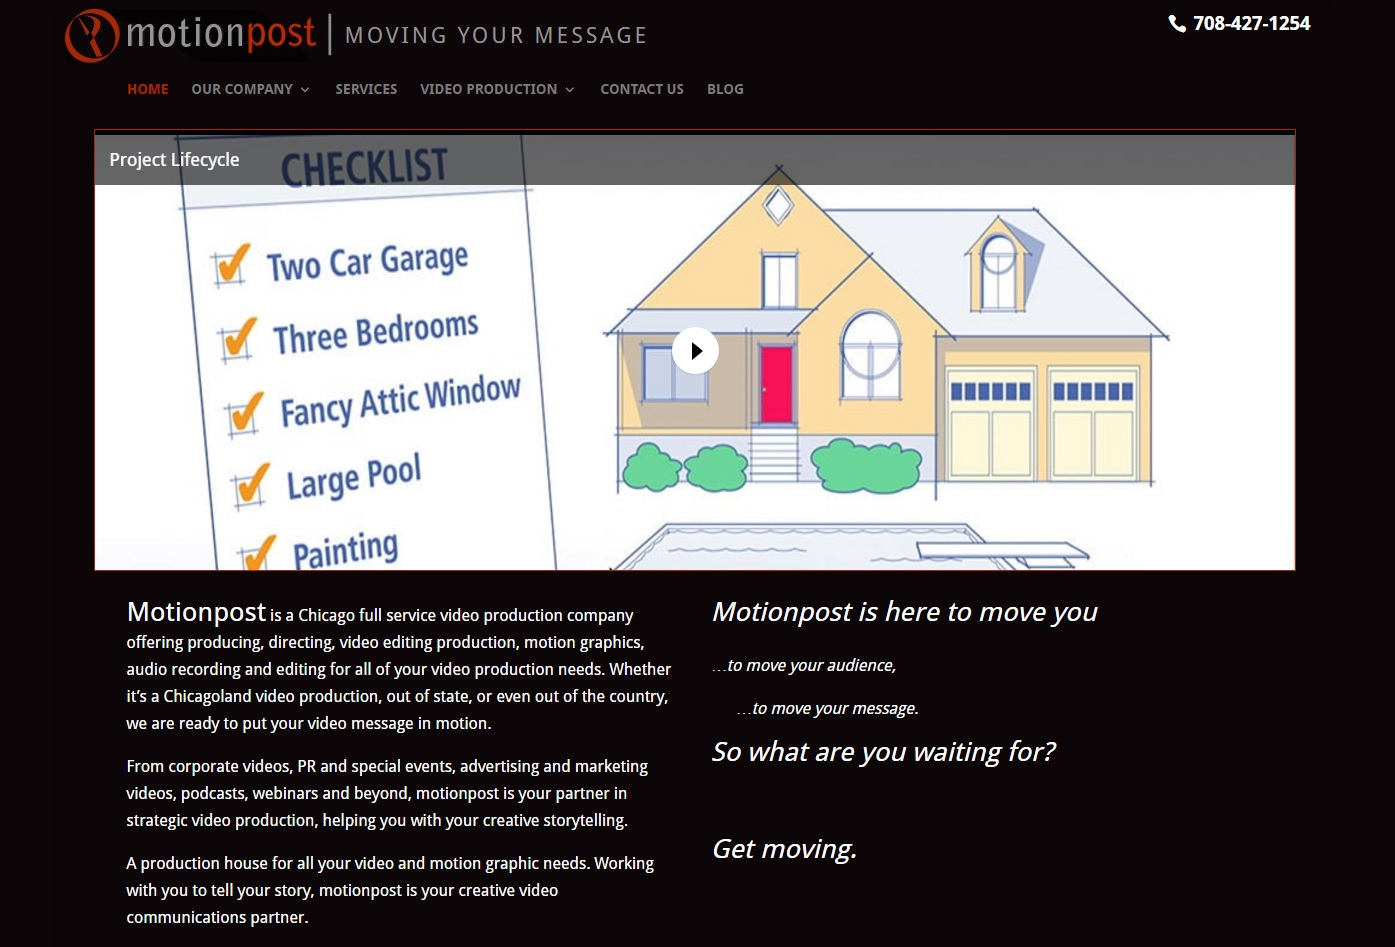 Motionpost-video-production Homepage Screenshot